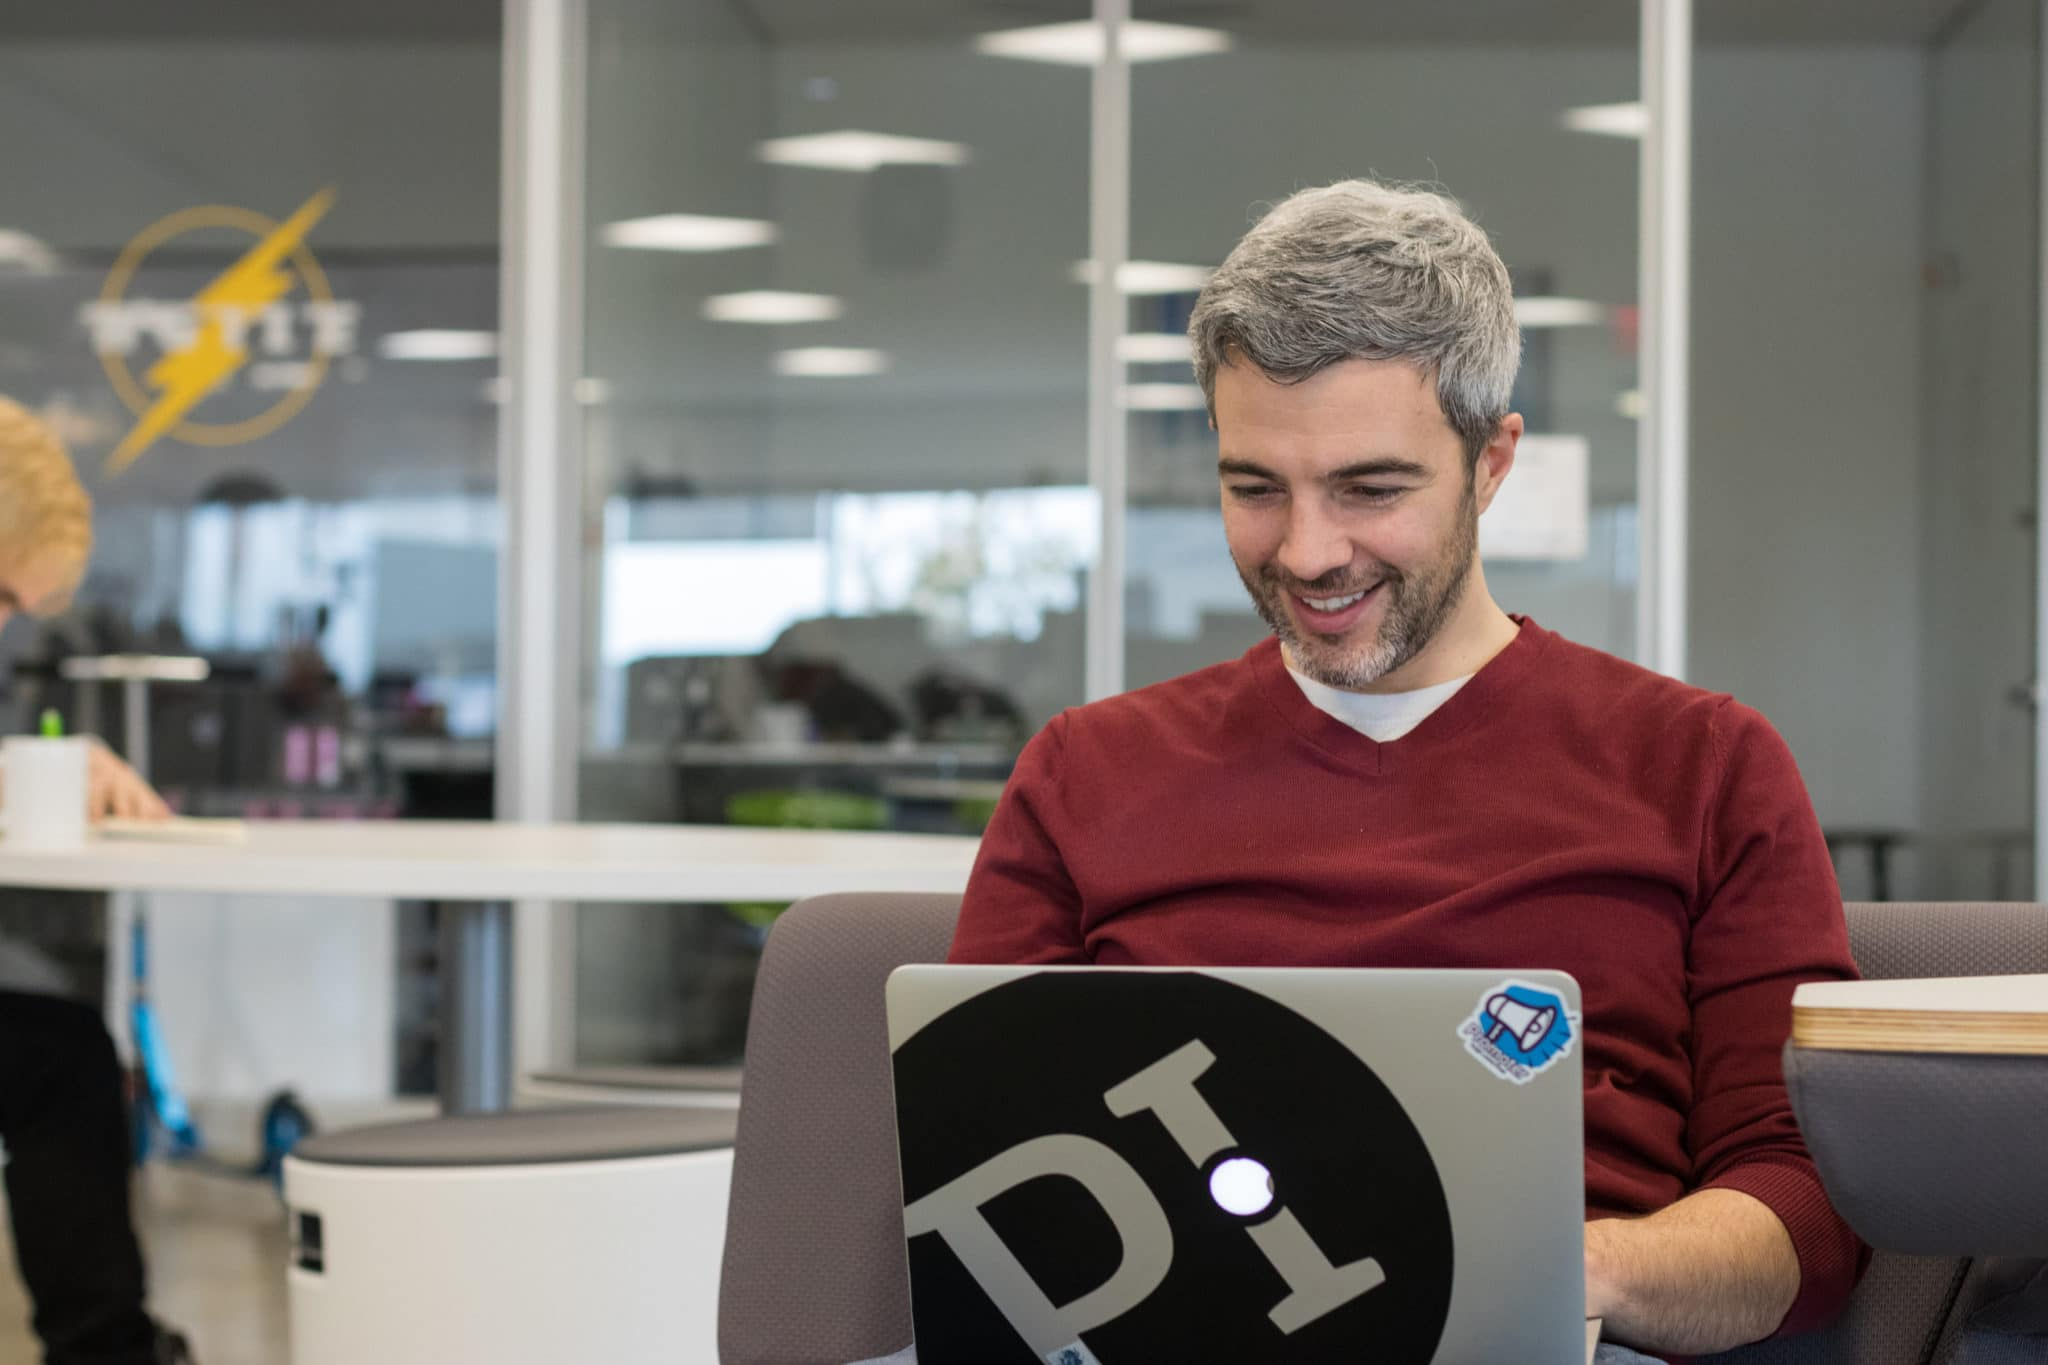 A PI employee building trust through virtual meetings